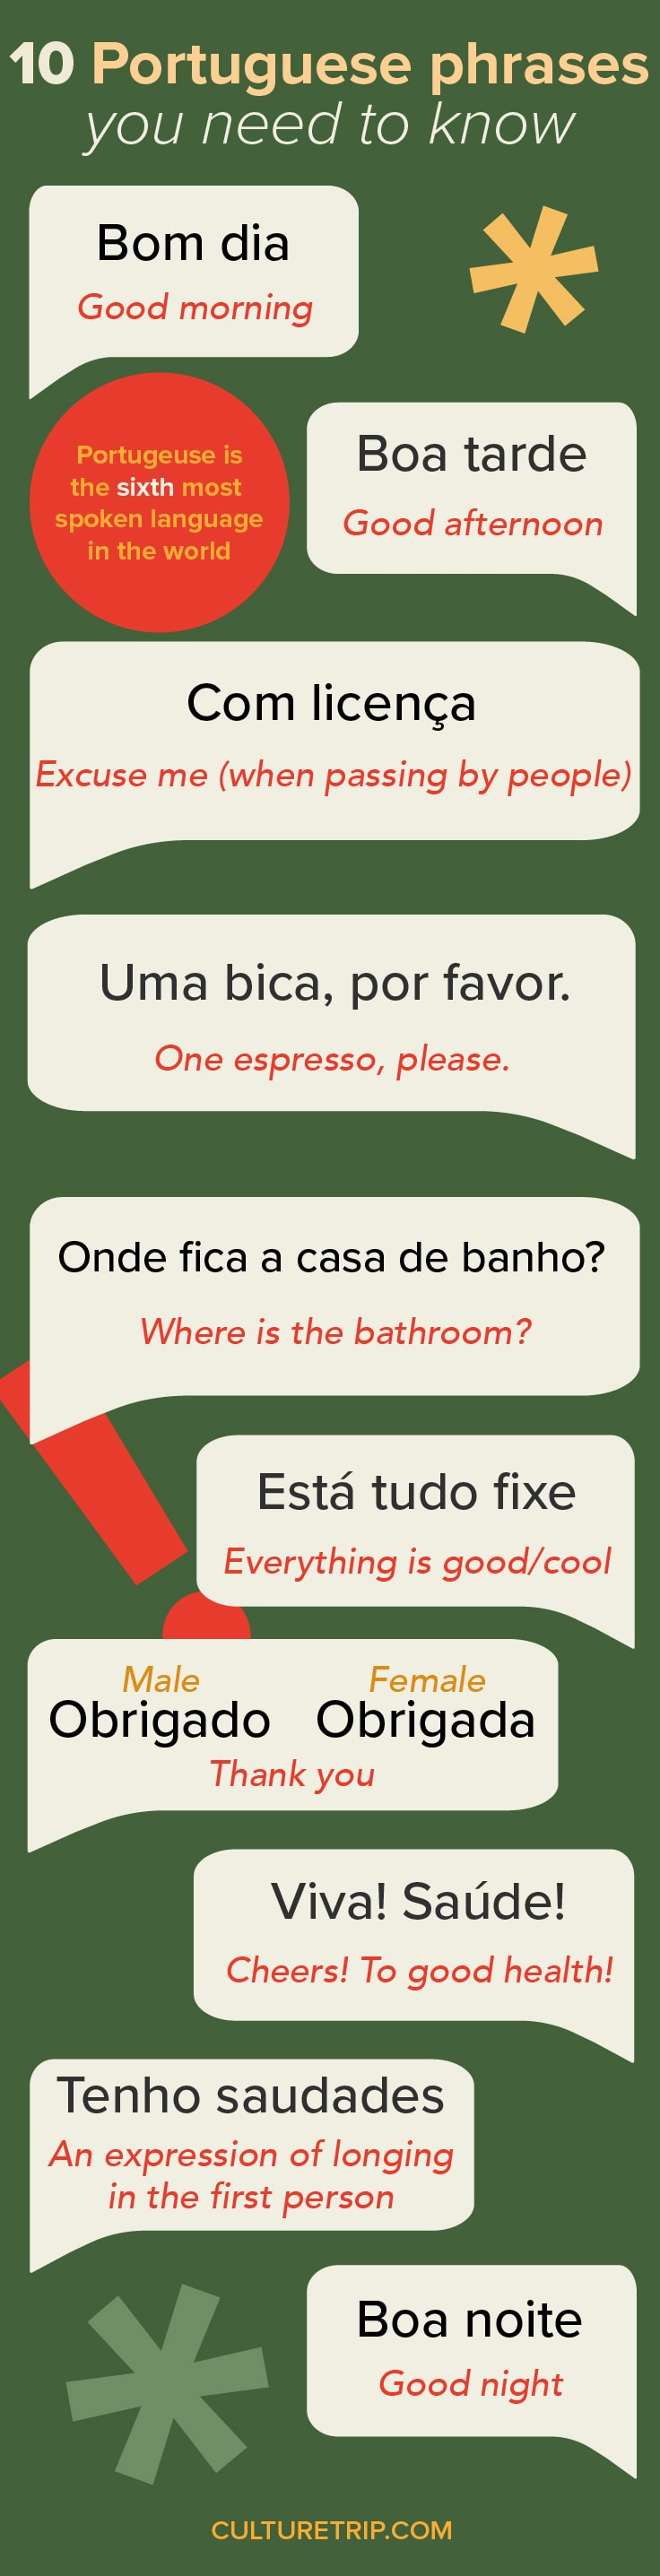 Learning To Use The Toilet In Brazil